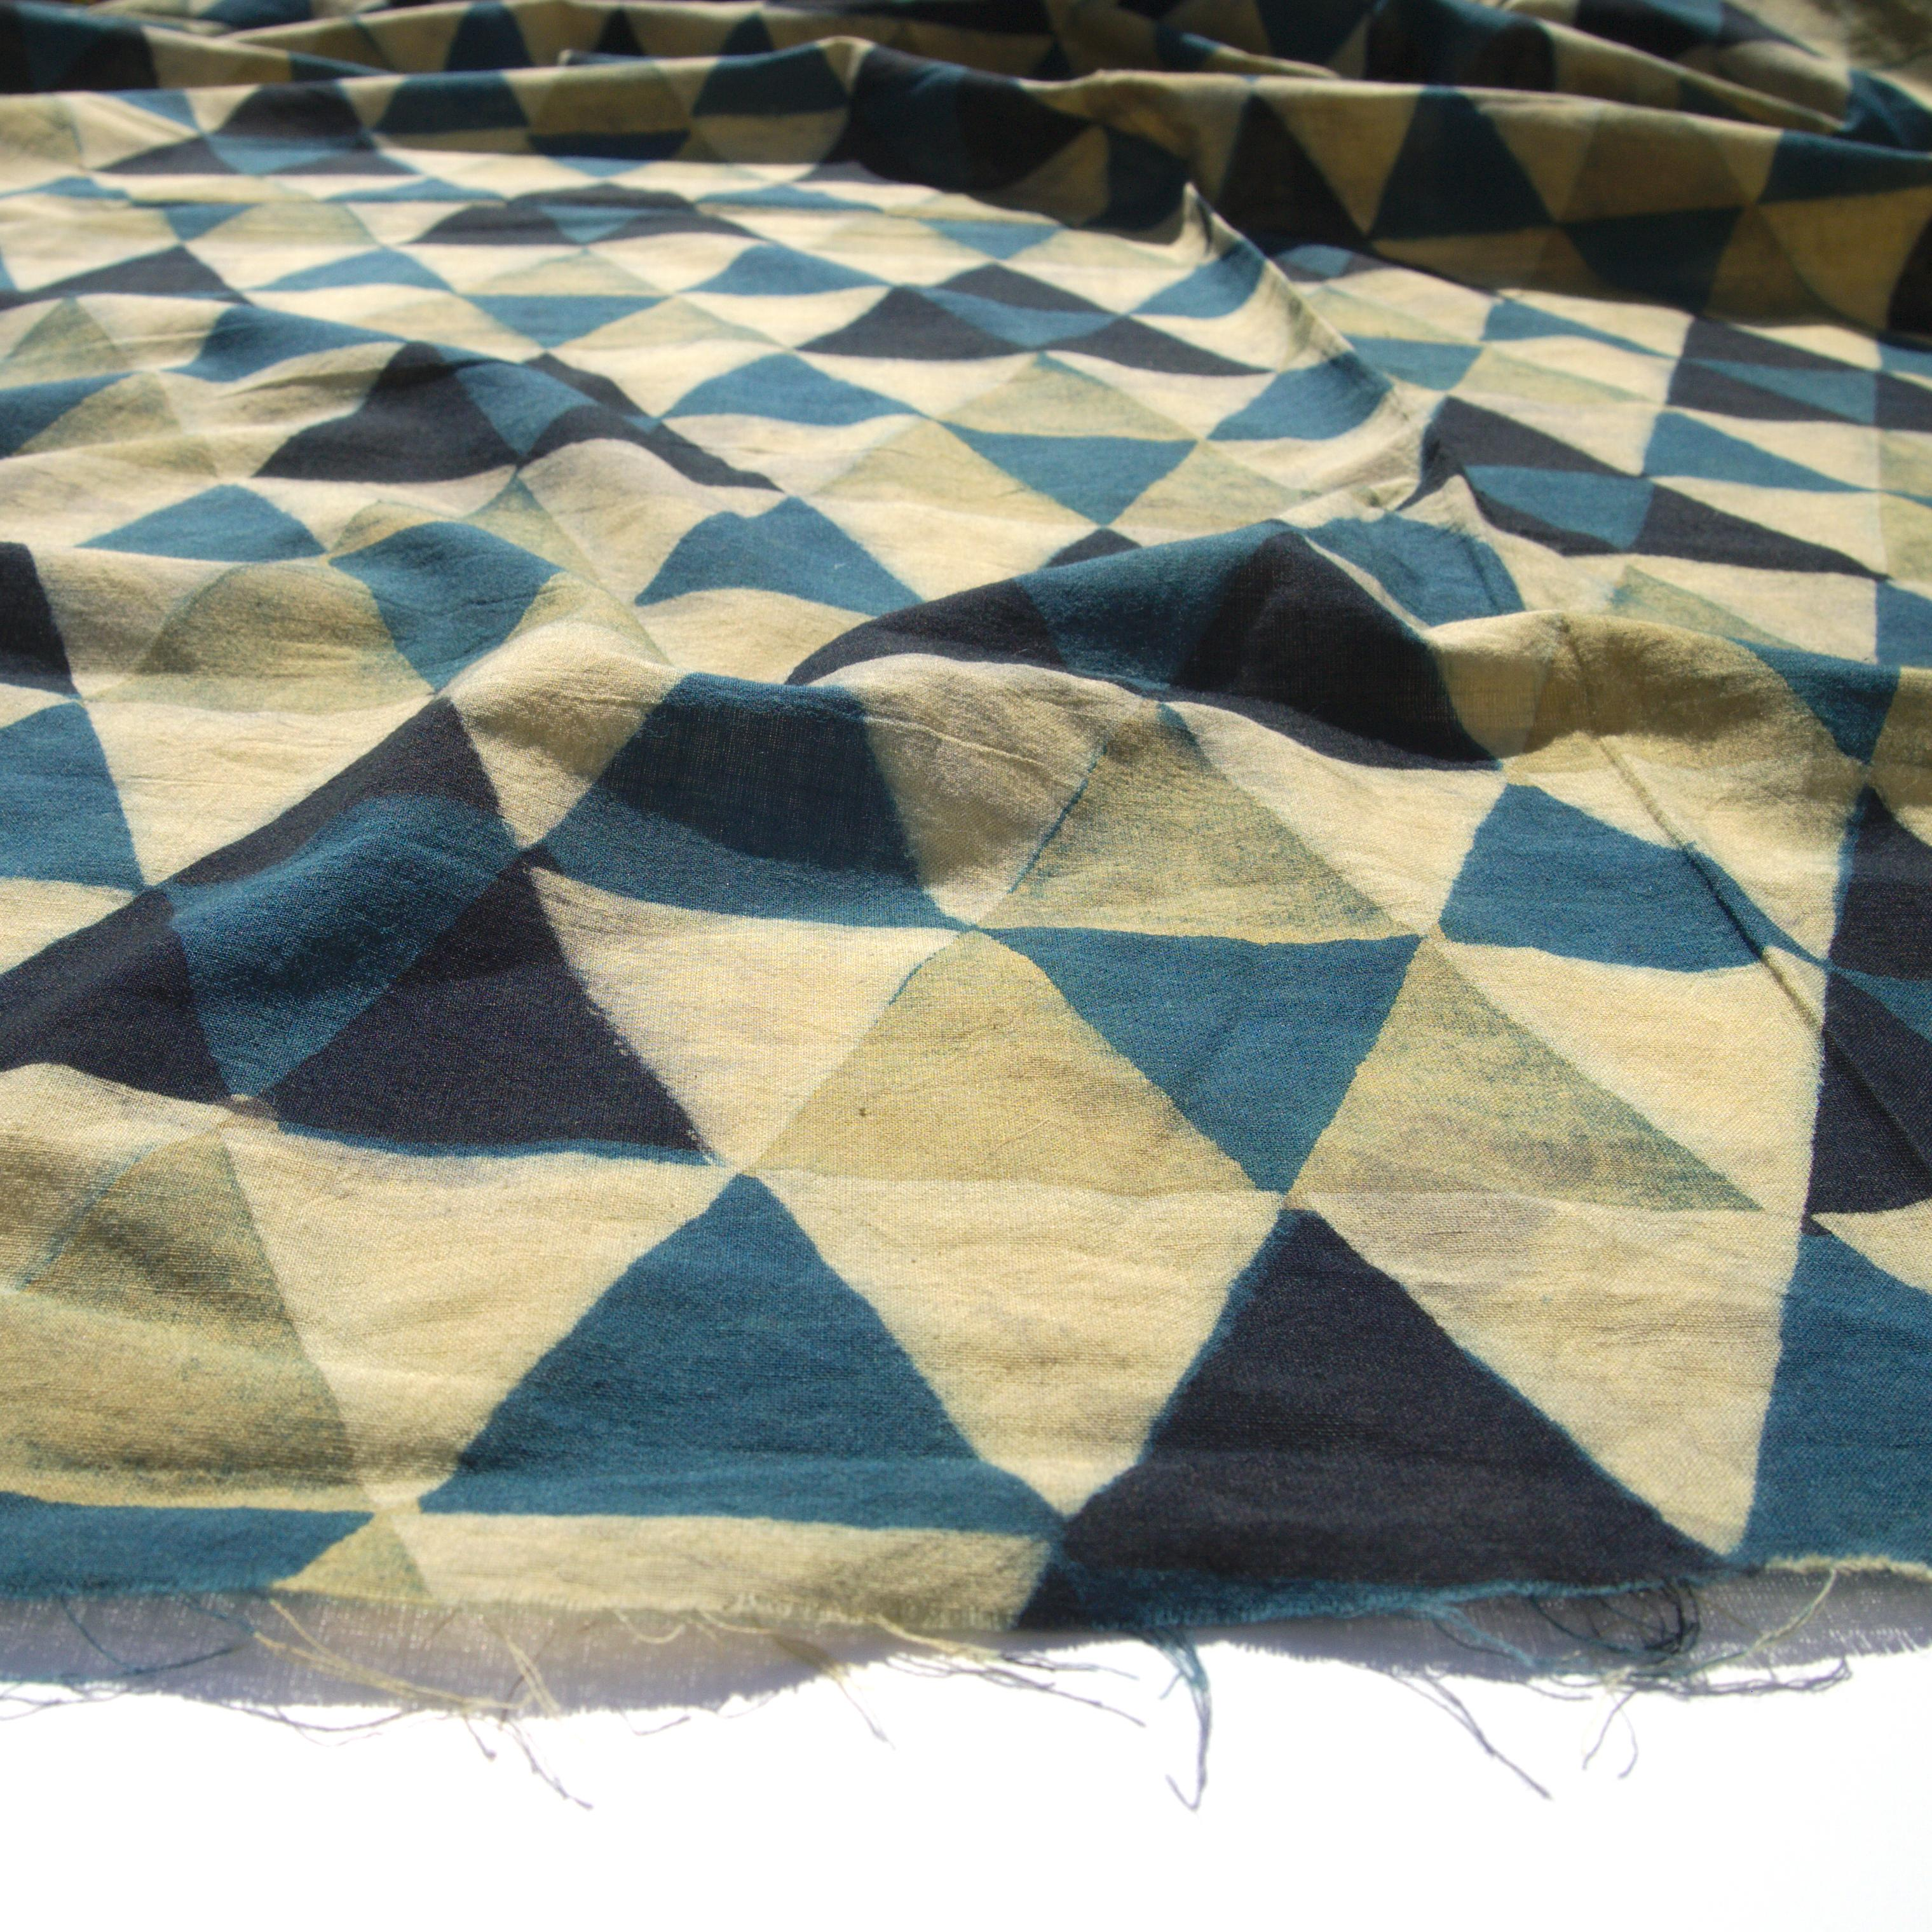 Block Printed Fabric, 100% Cotton, Ajrak Design: Beige Base, Small Indigo Blue Triangle, Big Lemon Yellow, Black Triangle. Angle